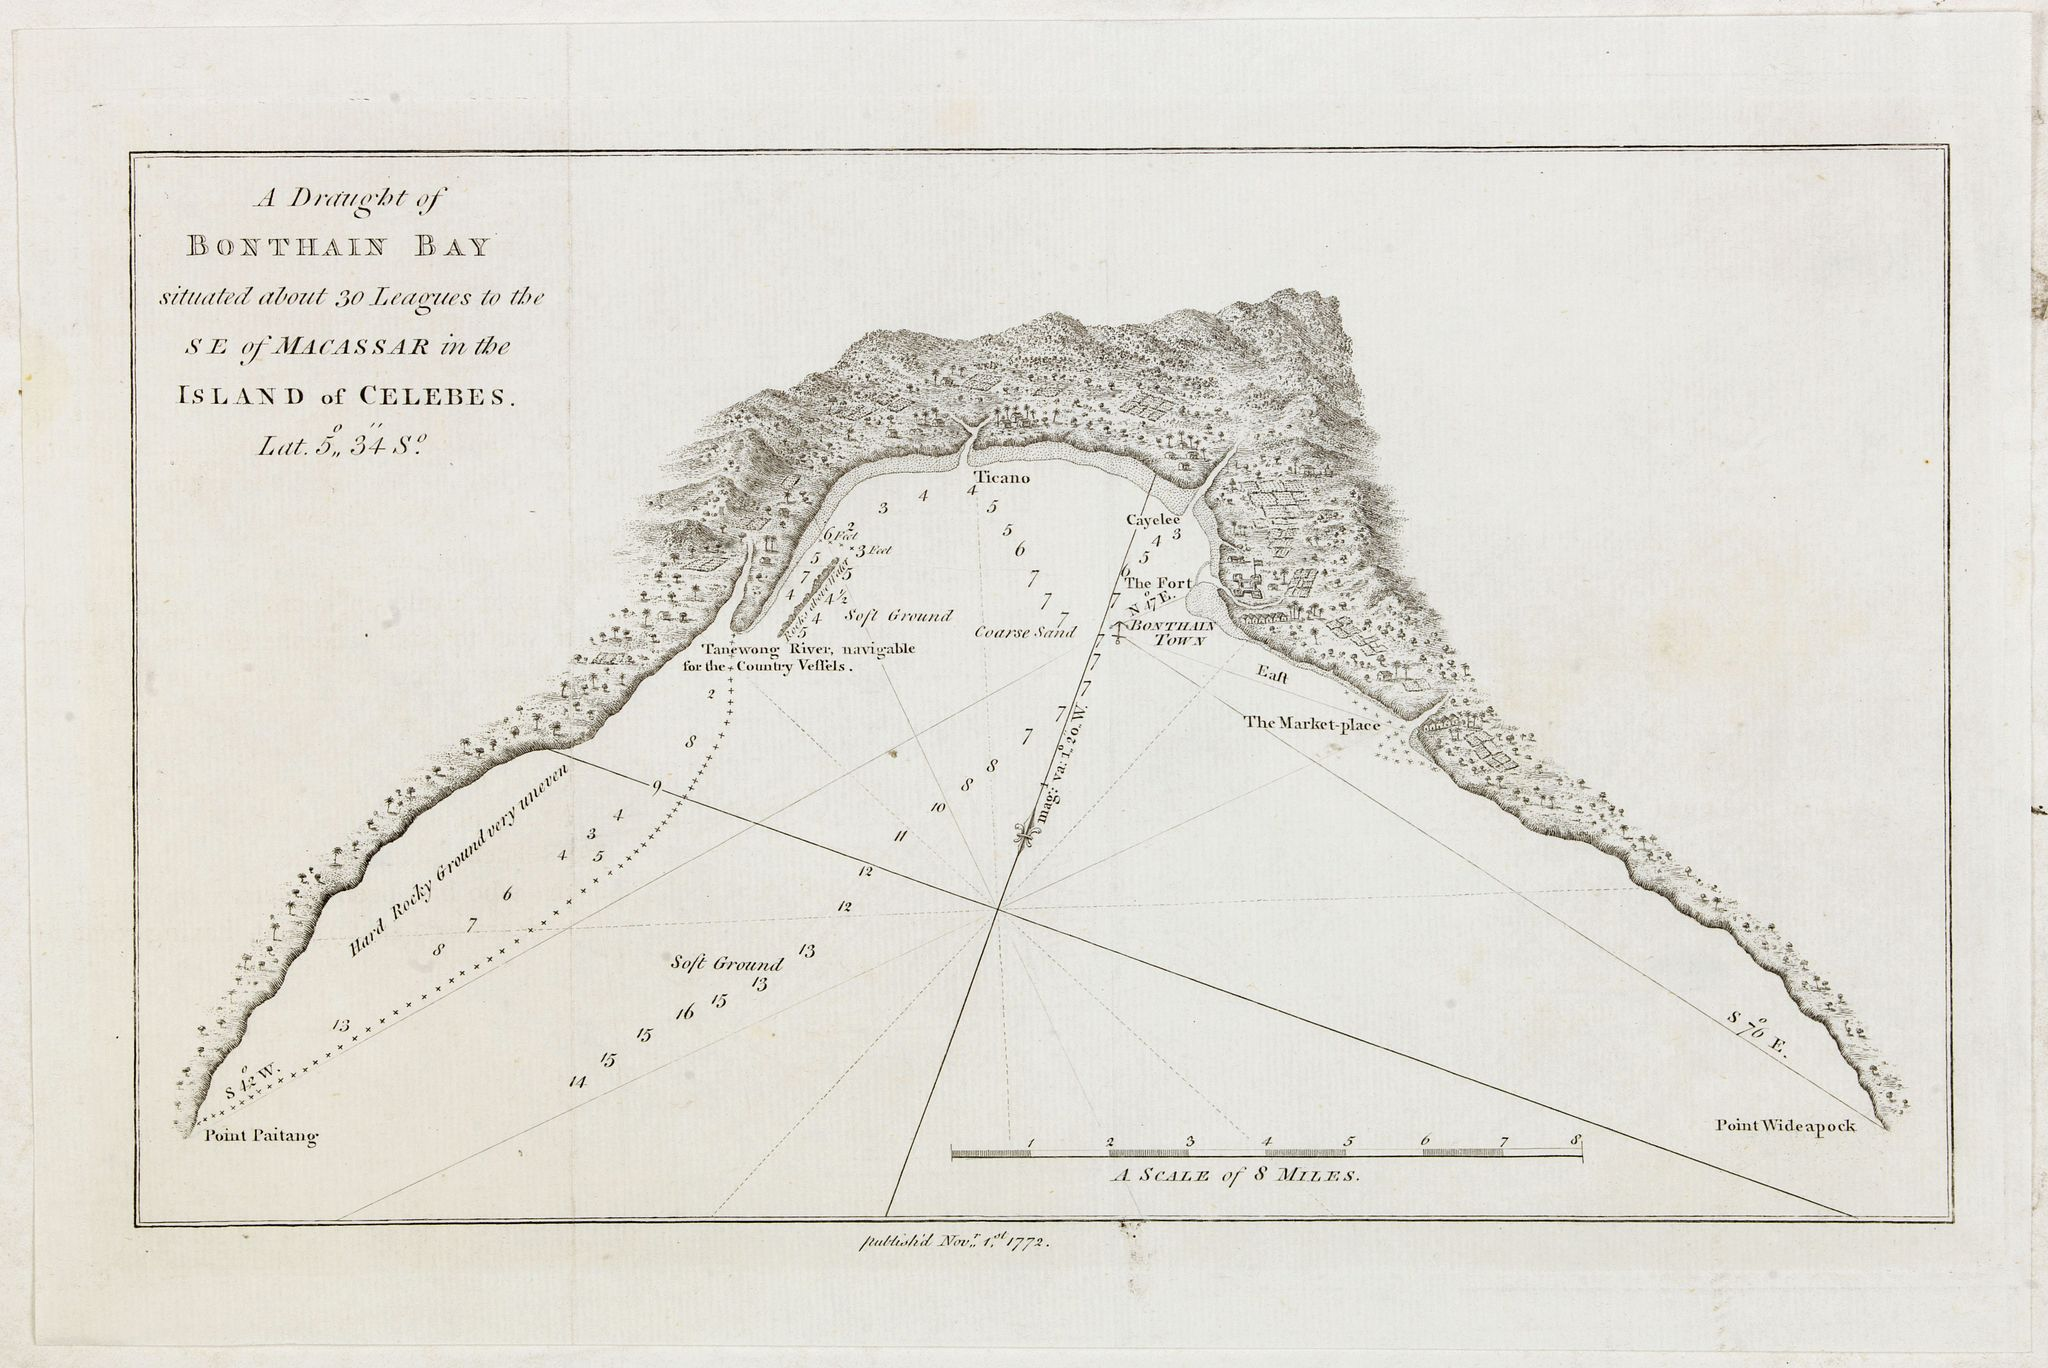 CARTERET, P. -  A Draught of Bonthain Bay situated about 30 Leagues to the S E of Macassar in the Island of Celebes. . .